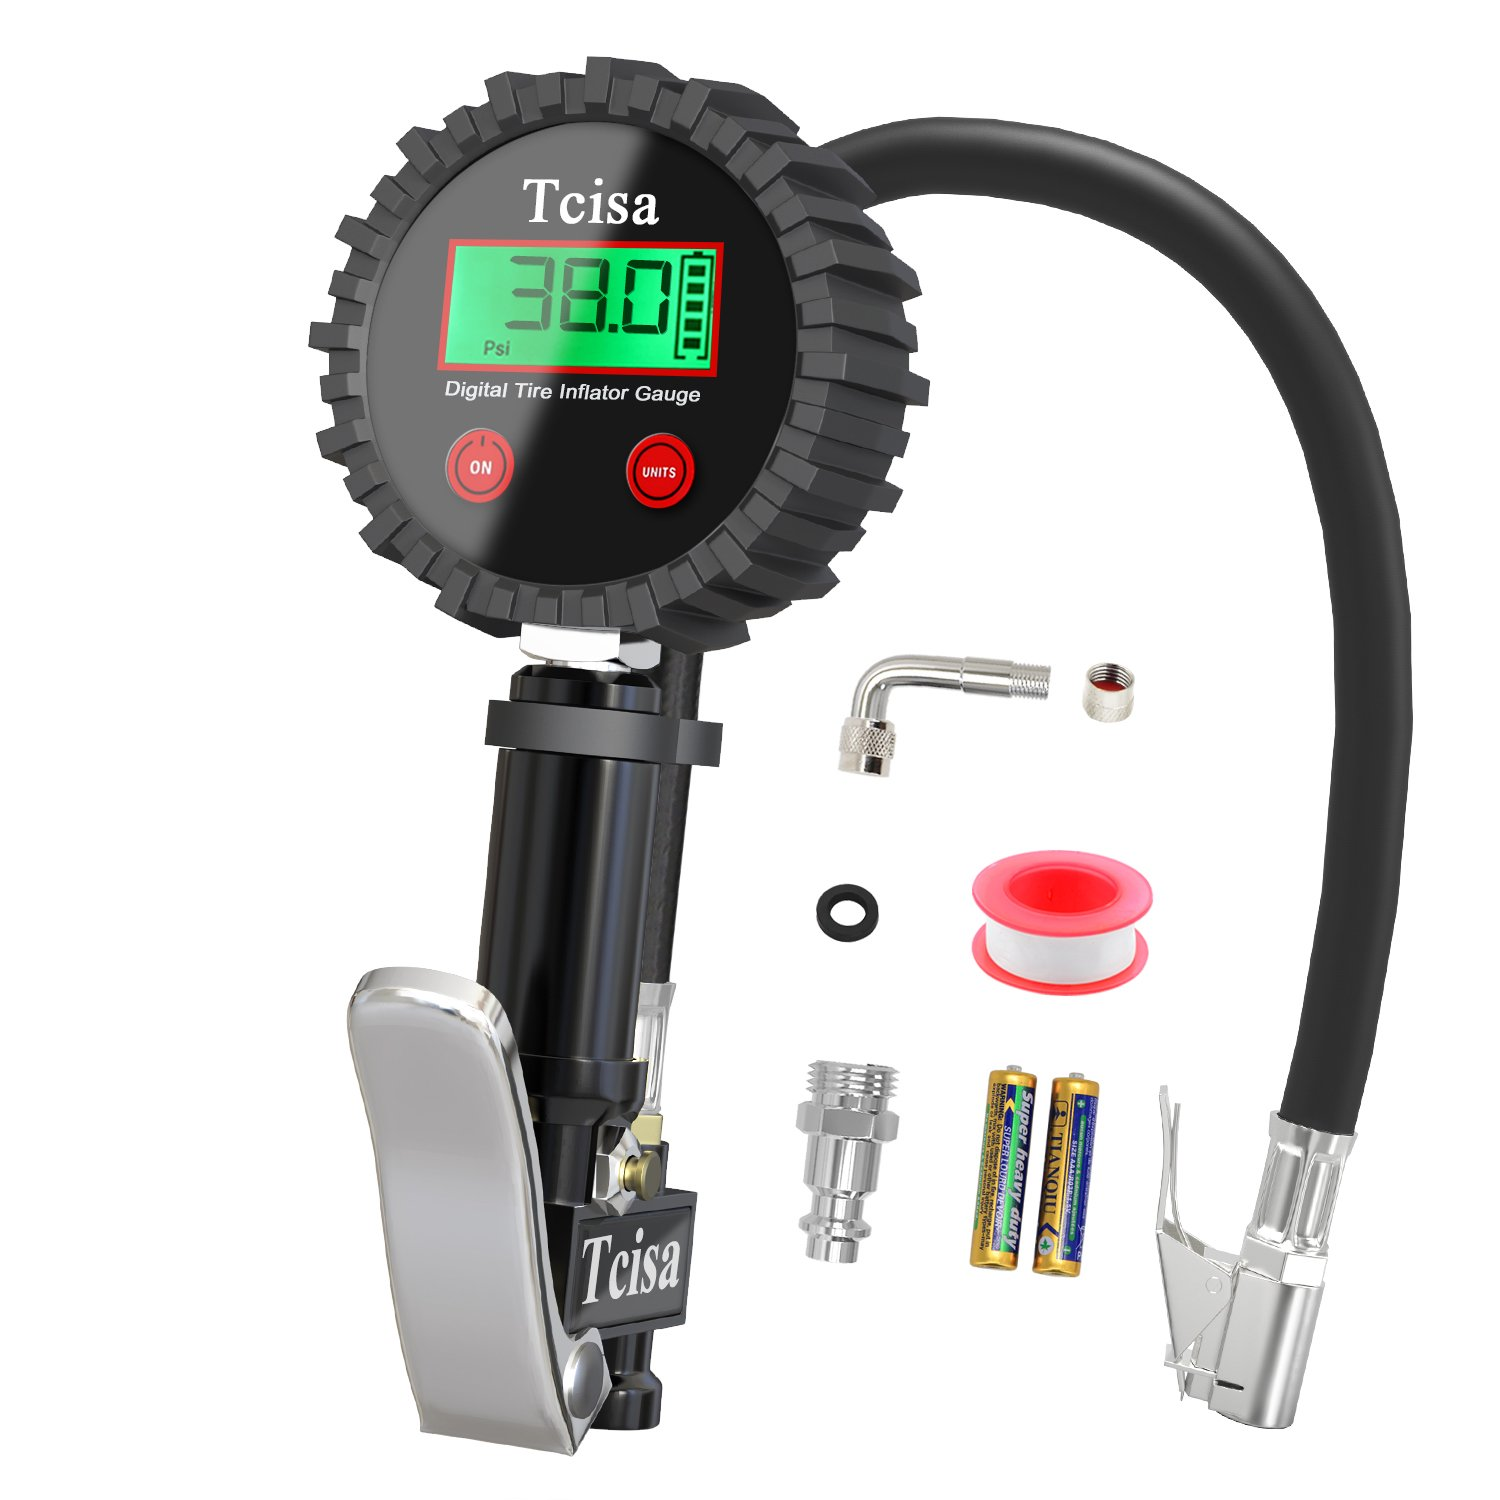 Tcisa Tire Inflator with Pressure Gauge - Digital Heavy Duty 200 PSI Air Pressure Gauge with Leakproof Air Chuck Valve Extender Rubber Air Hose Quick-Connect Fitting